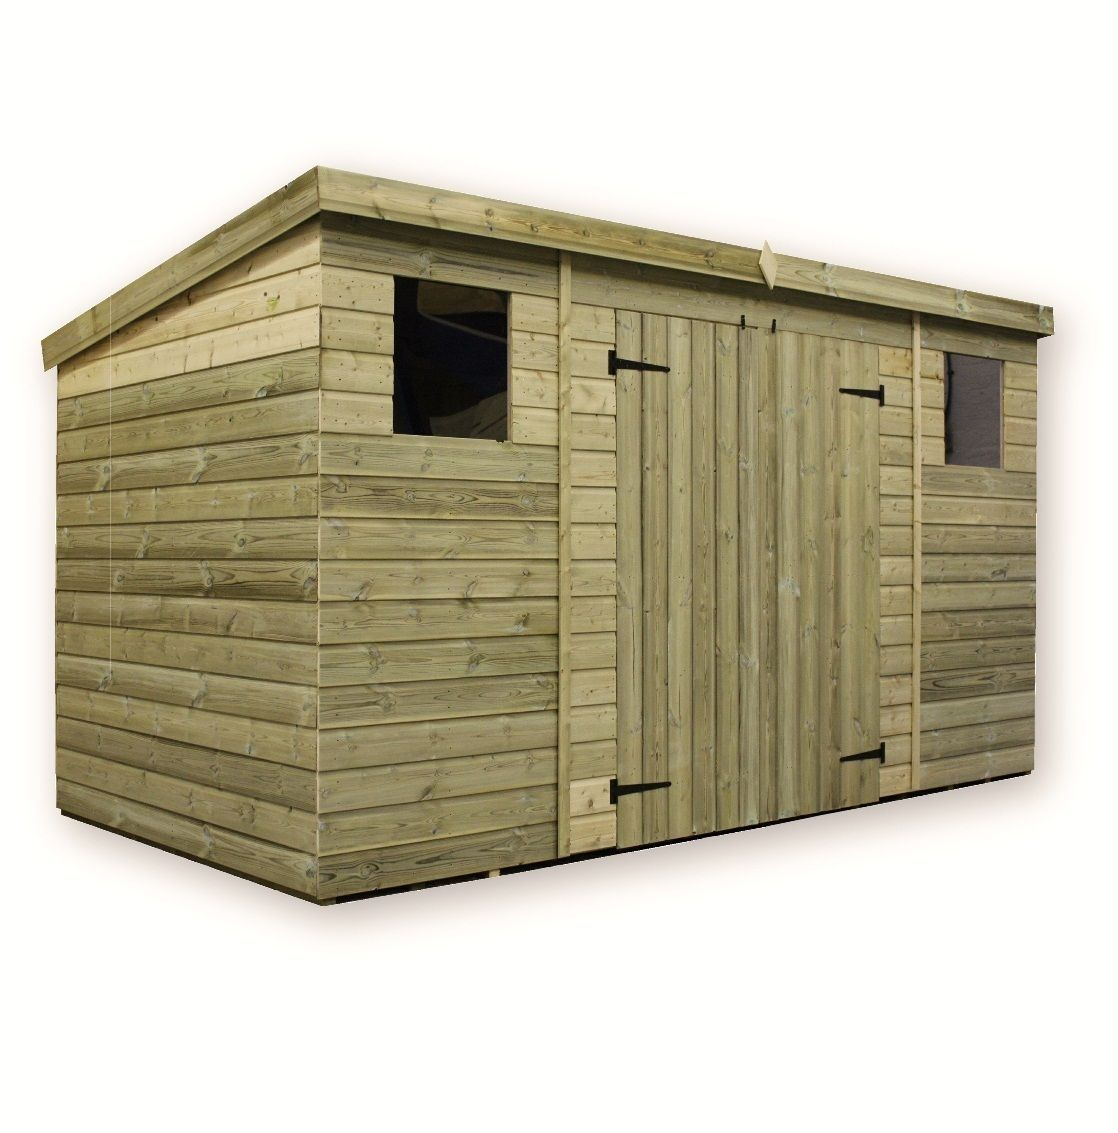 Details About Wooden Garden Shed 10x6 12x6 14x6 Pressure Treated Tongue And Groove Pent Shed Wooden Sheds Garden Shed Shed